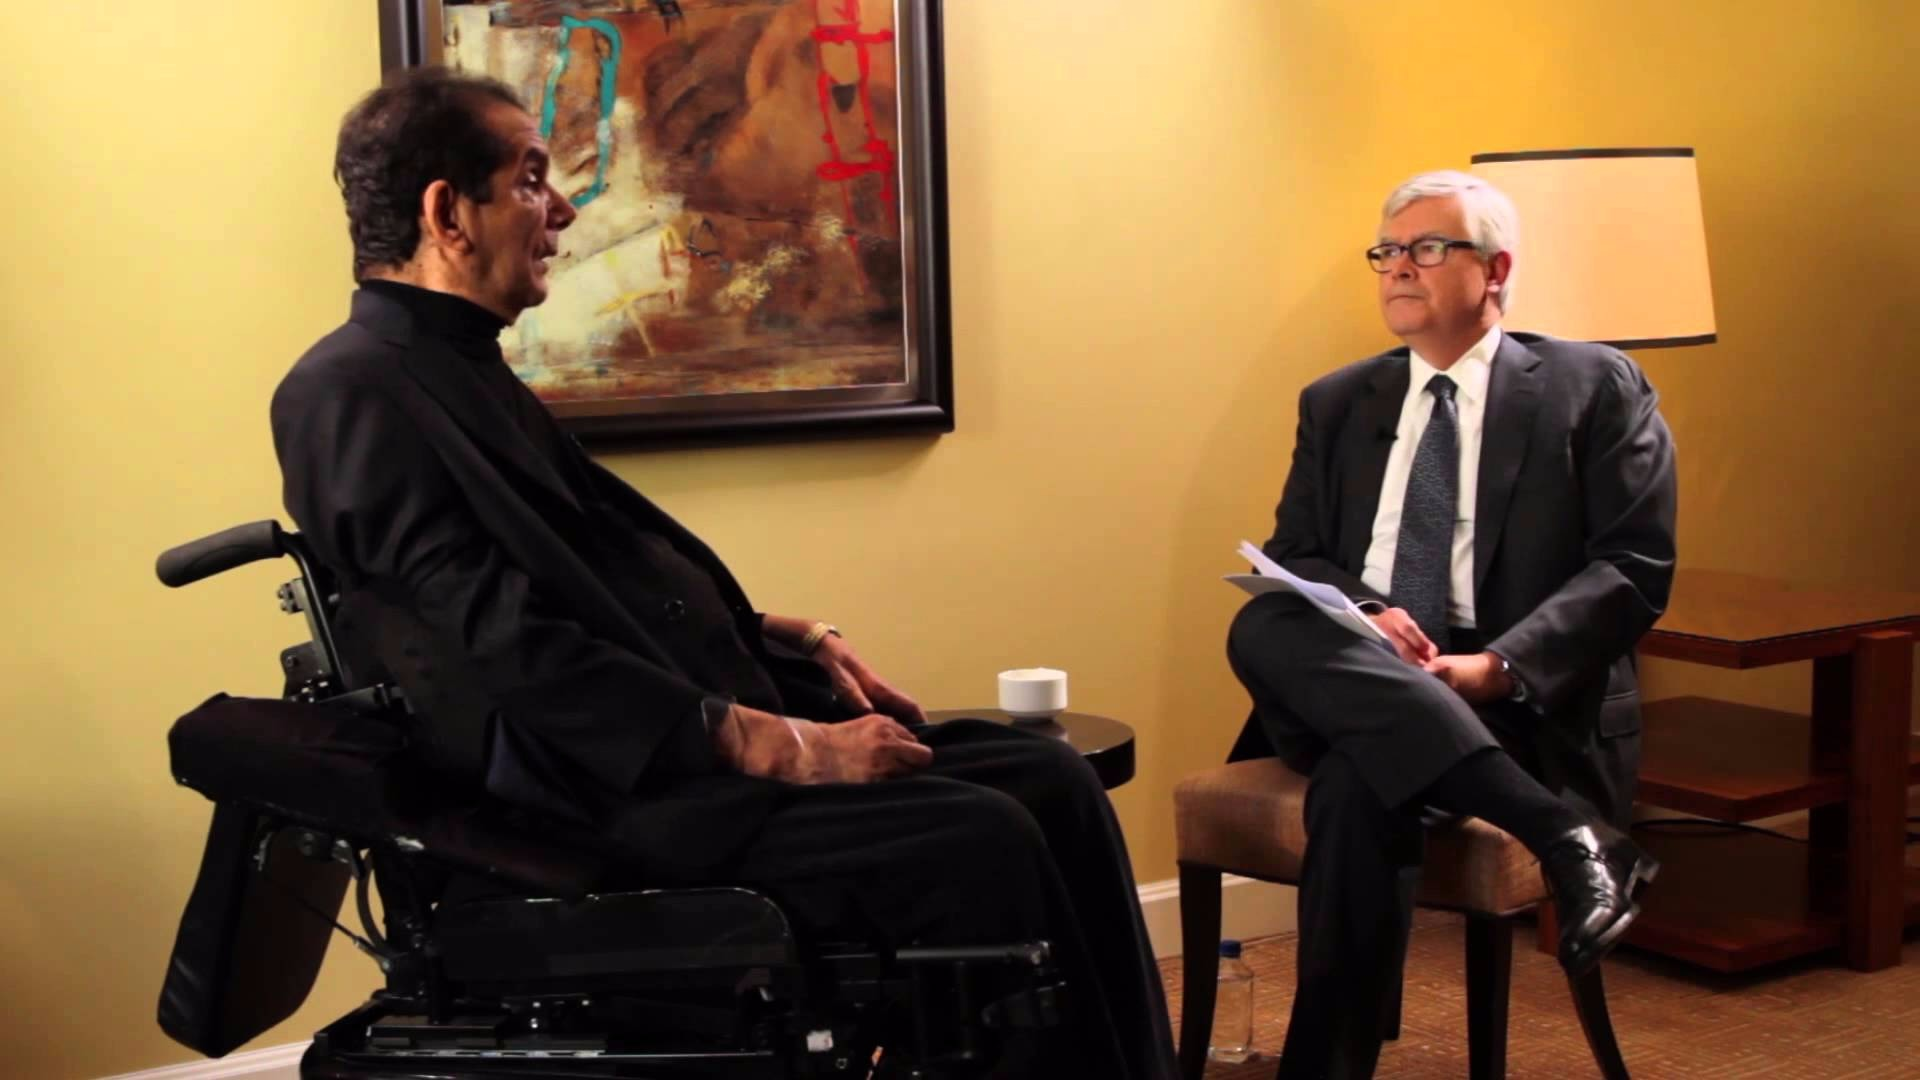 Charles Krauthammer and professor Charles R. Kesler are sitting face to face for an interview. Kesler is sitting on a chair while Charles Krauthammer is sitting in a wheelchair.